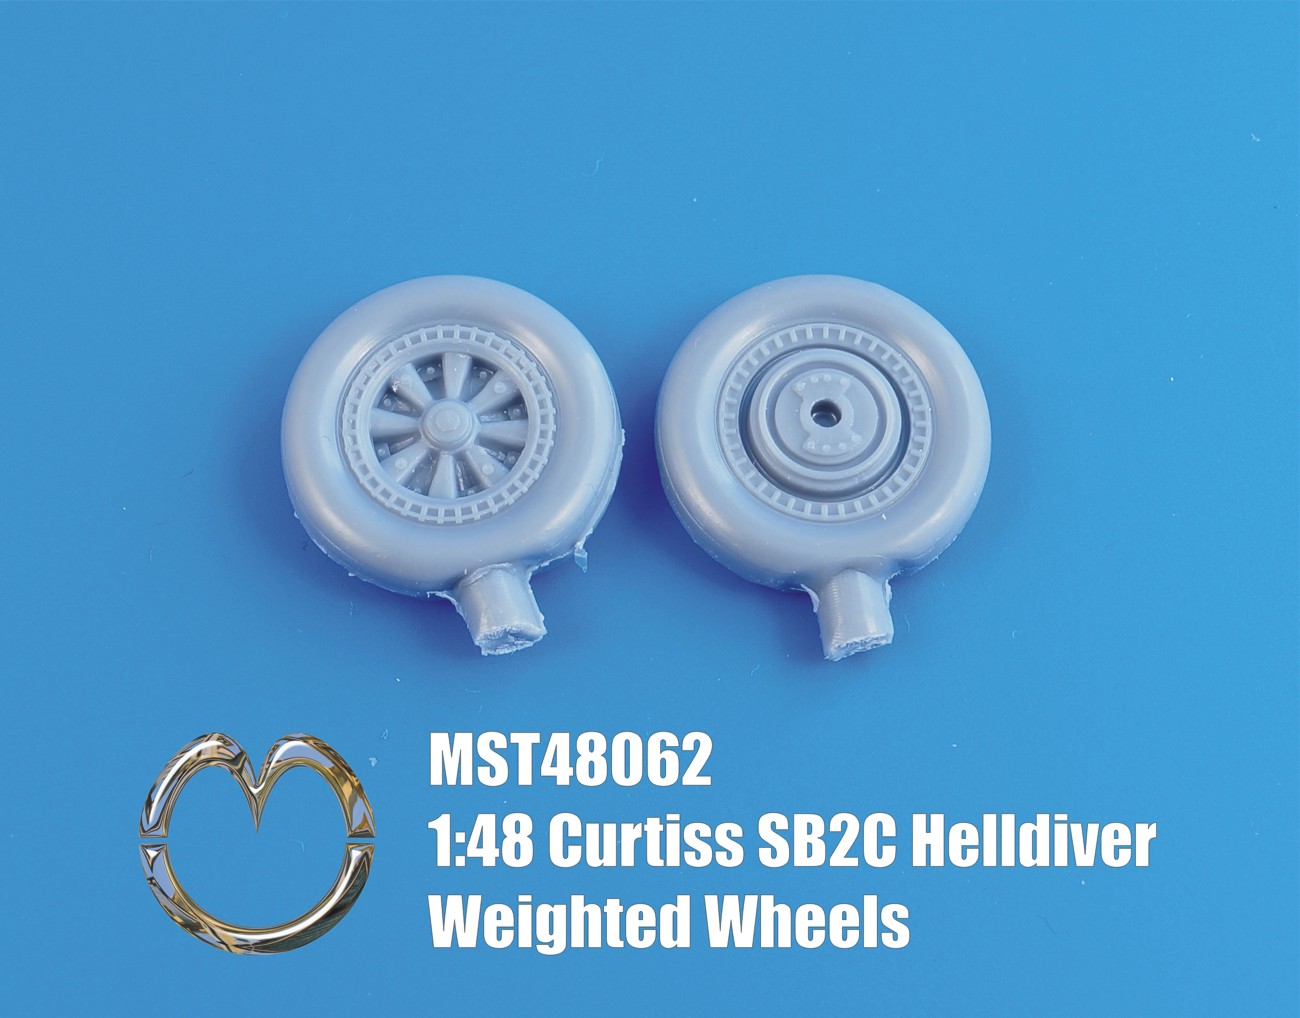 MST48062 Curtiss SB2C Helldiver Weighted Wheels